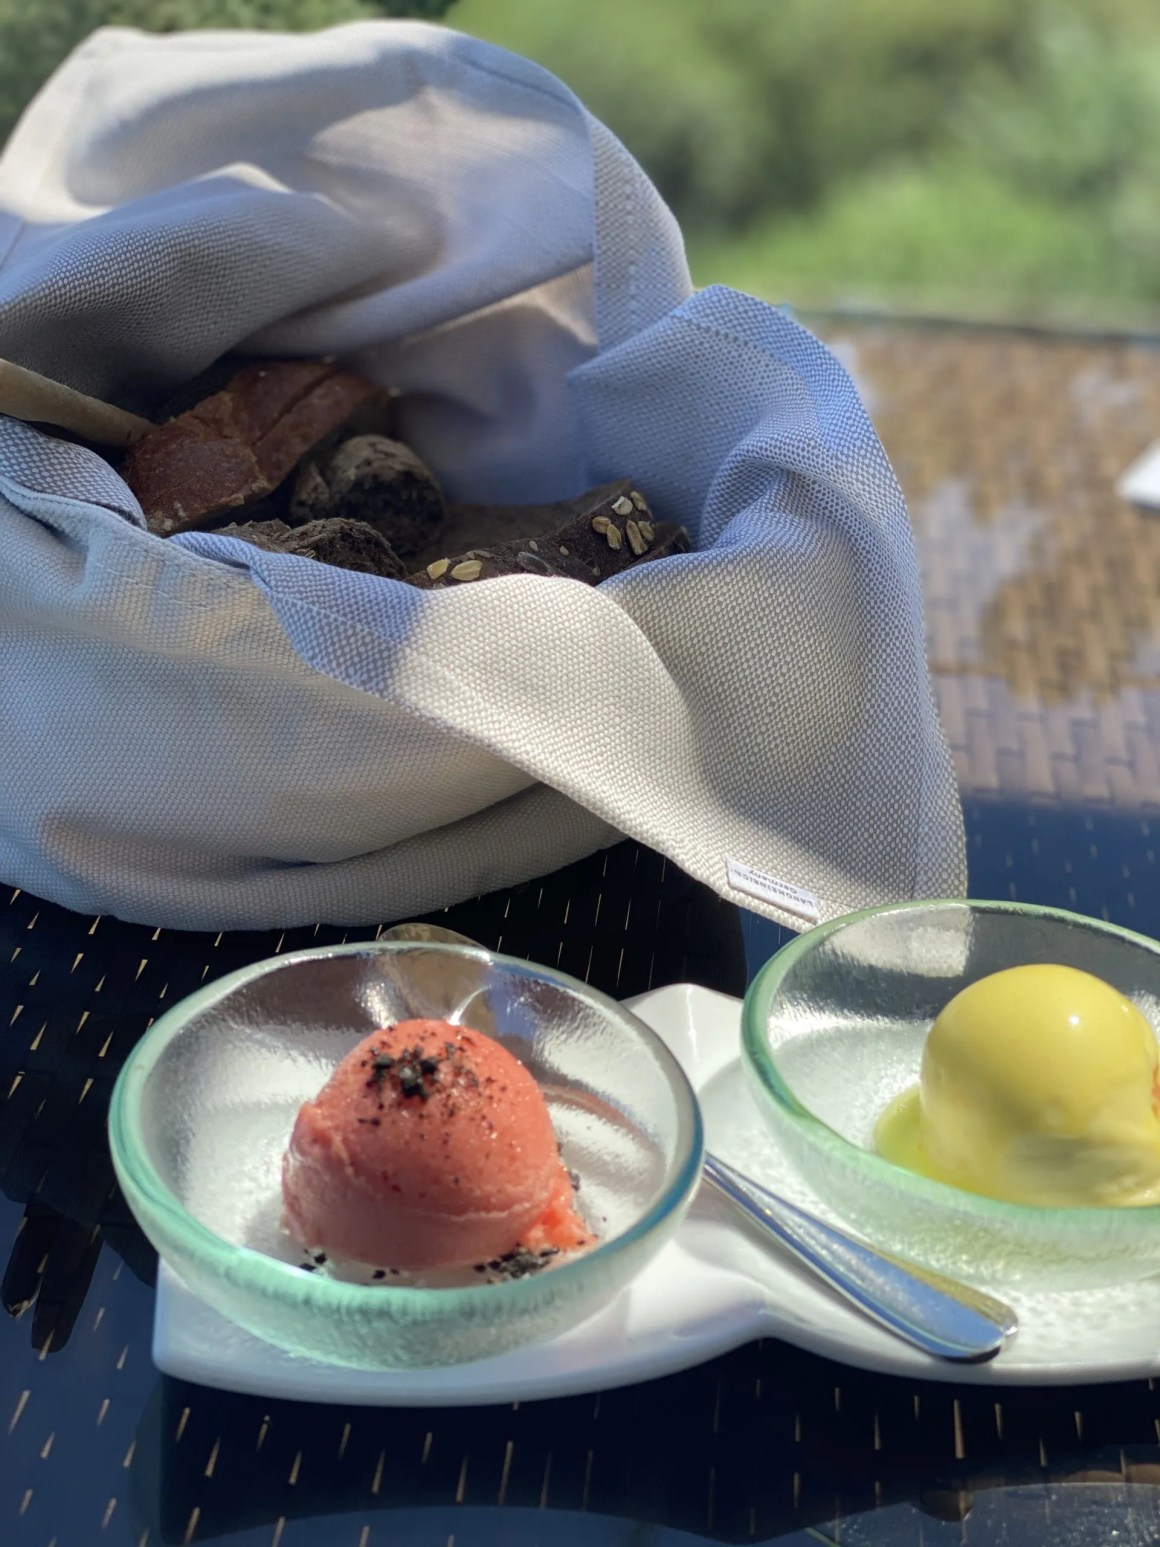 olive oil sorbet at Terpsis restaurant, Minos Beach Art Hotel, Crete